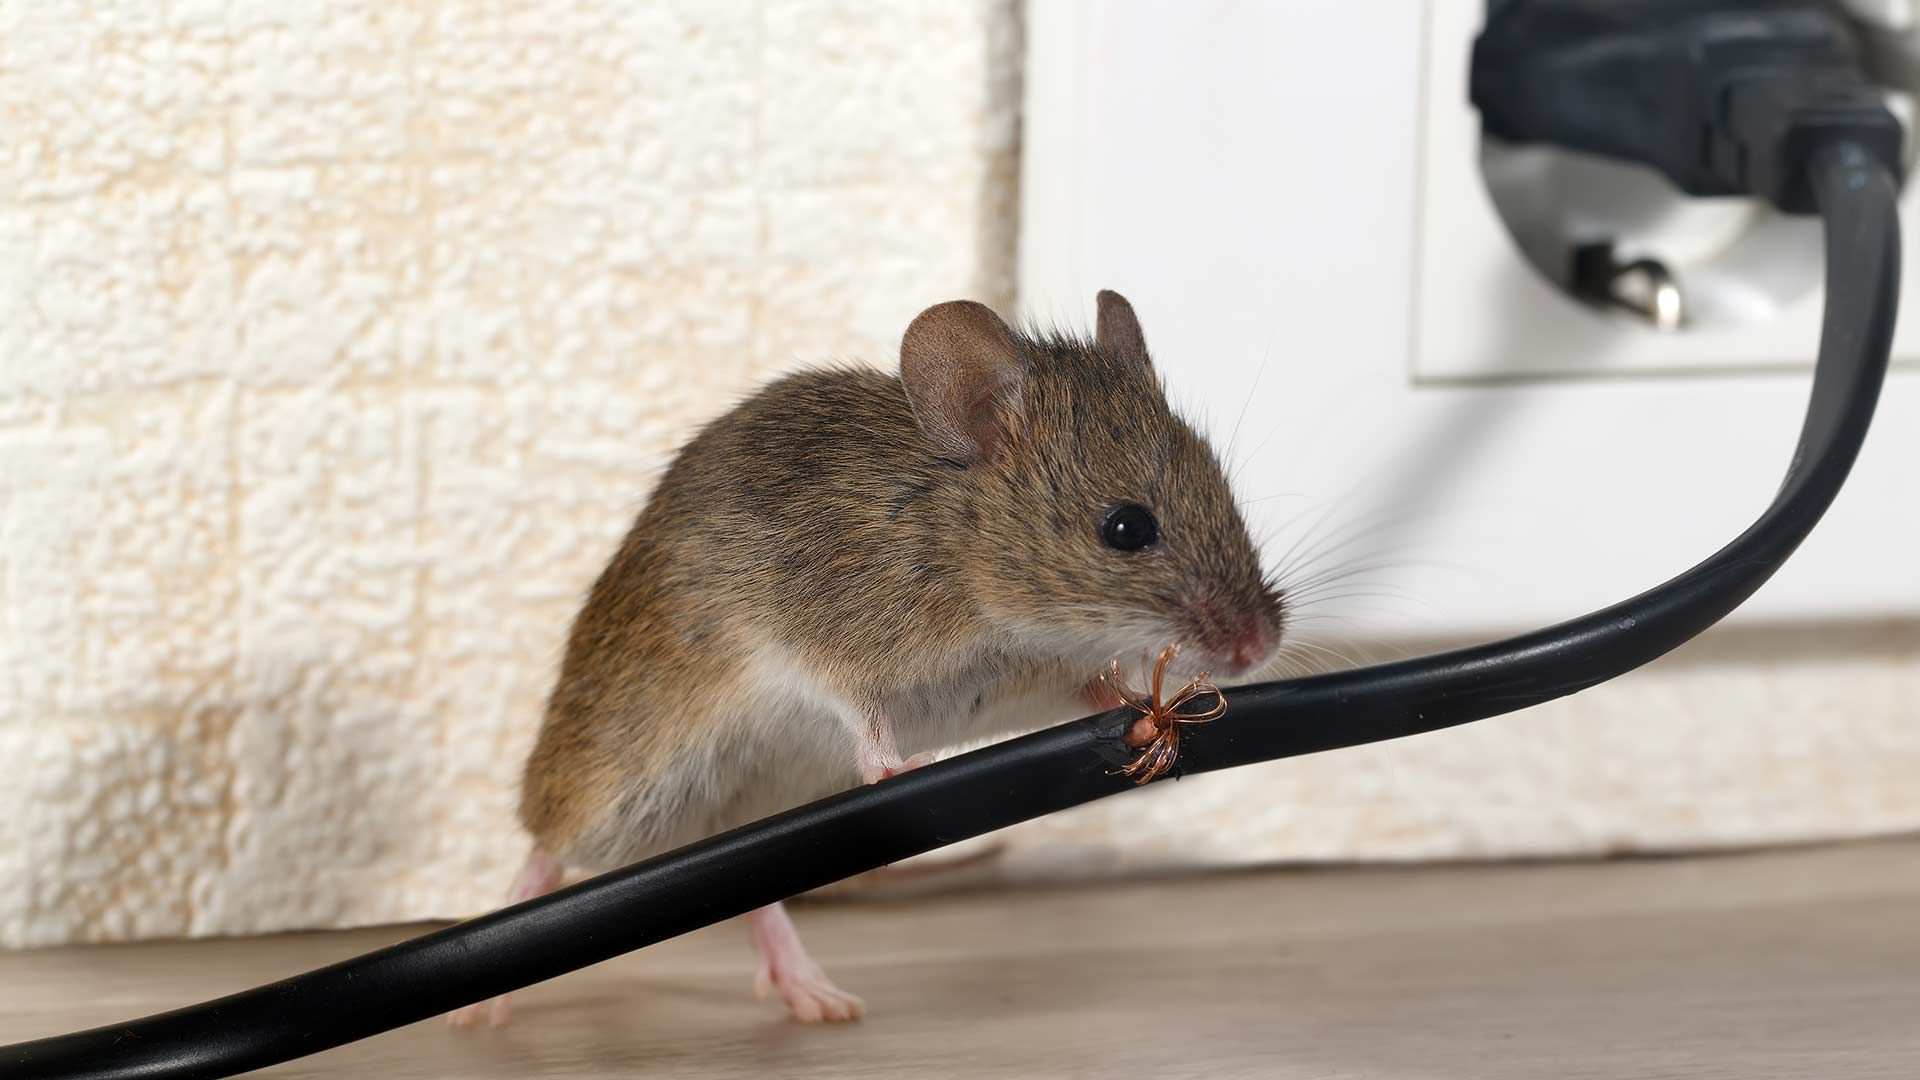 Do Ultrasonic Pest Repellents Really Work? in 2020